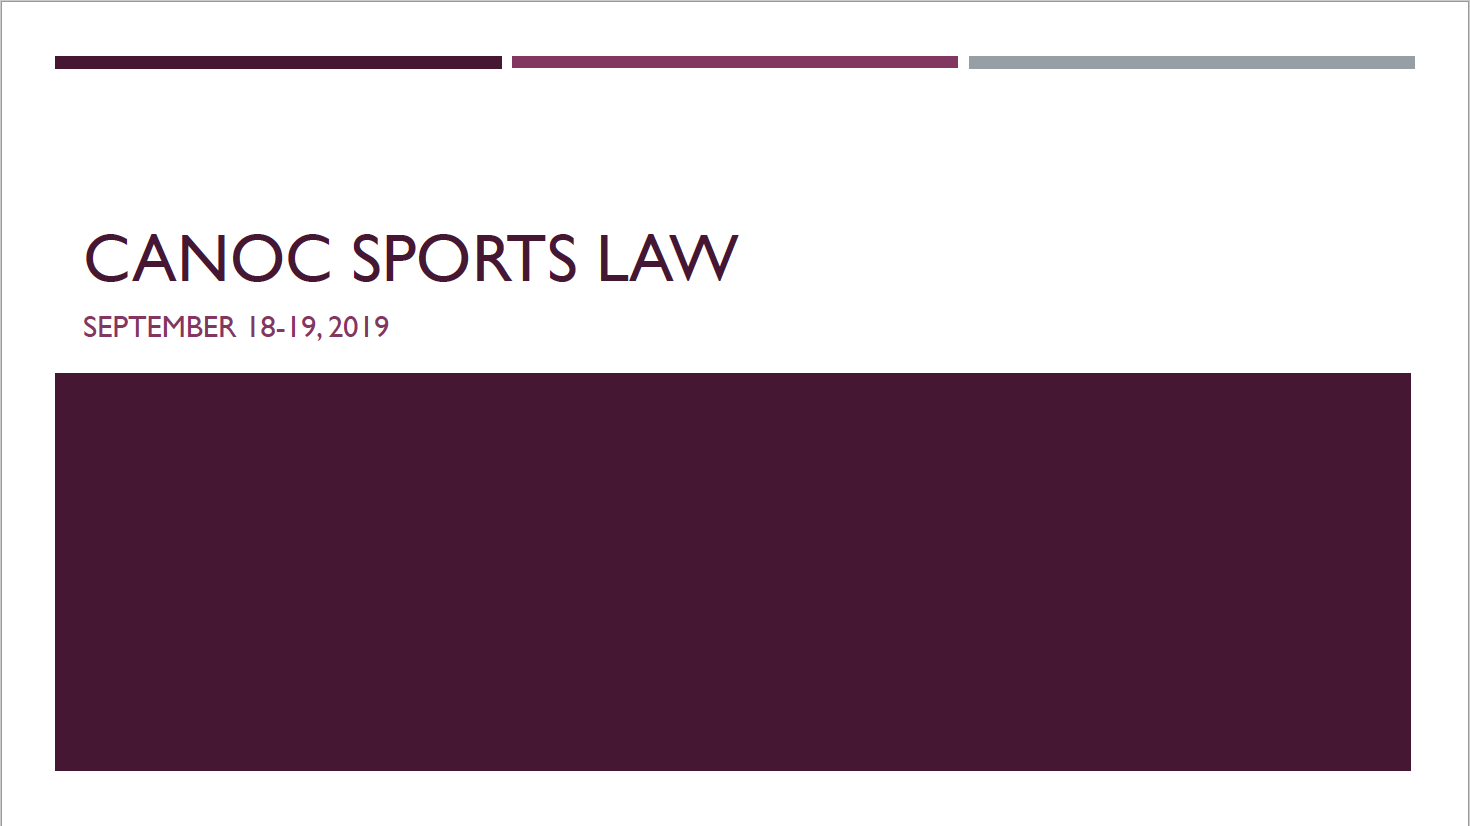 CANOC SPORTS LAW